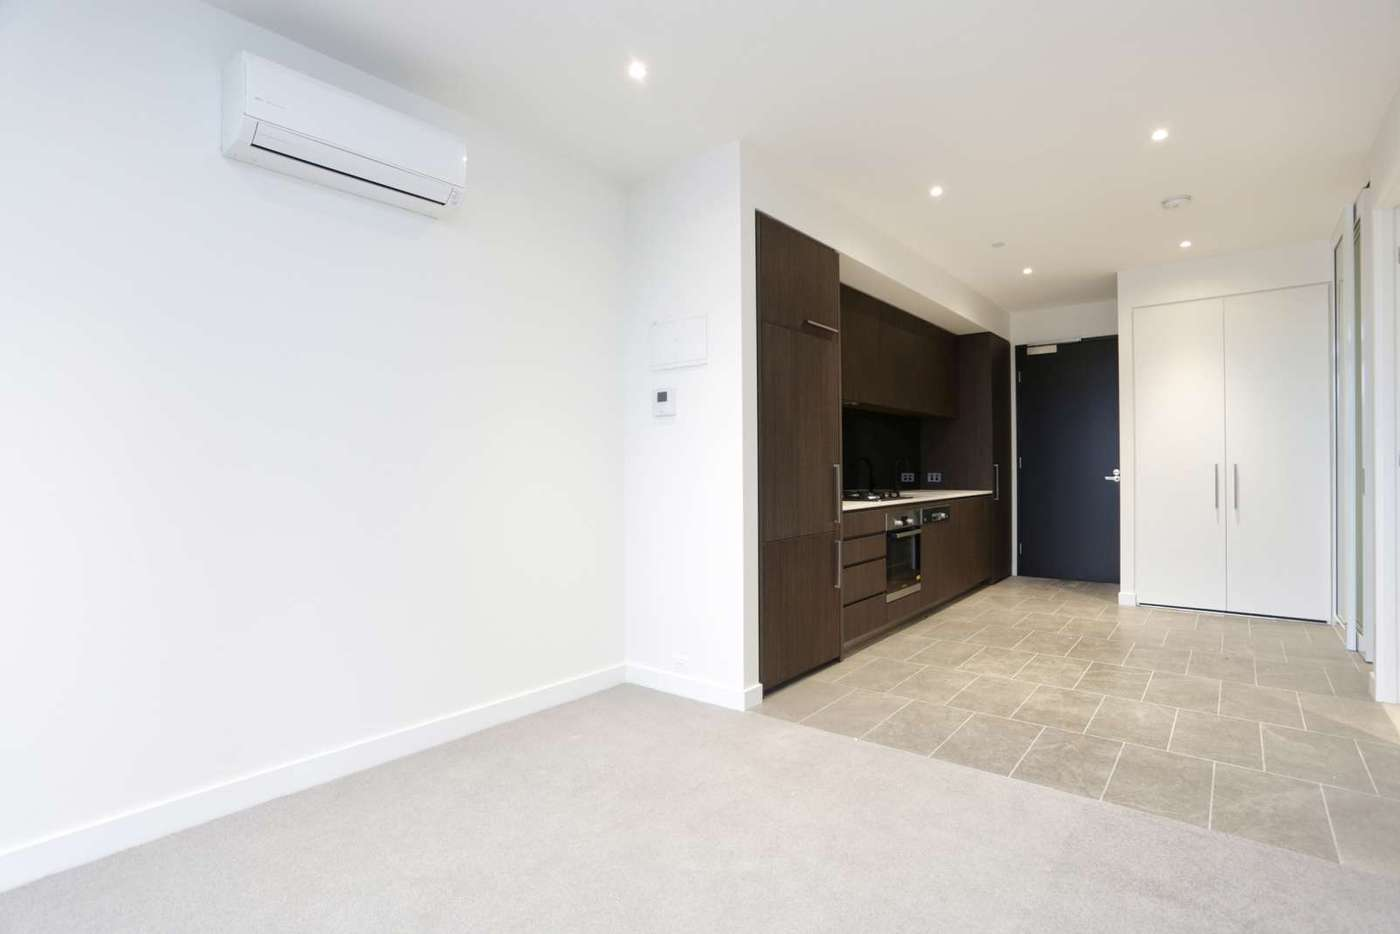 Seventh view of Homely apartment listing, 2510/120 A'Beckett Street, Melbourne VIC 3000